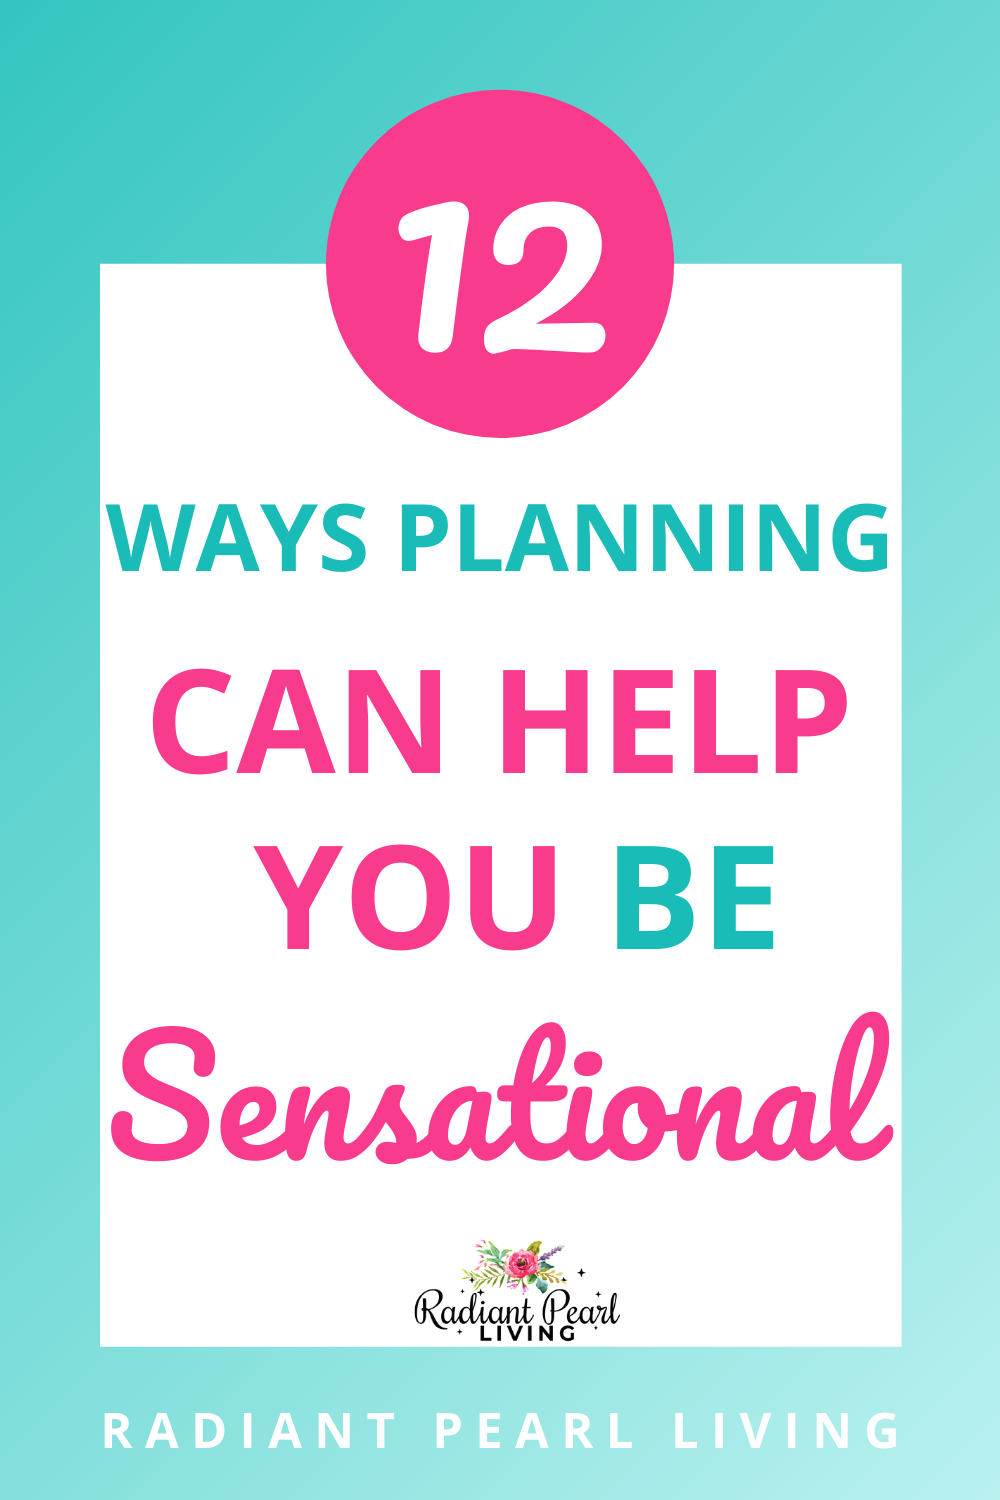 Can planning help you be sensational? Here are 12 ways planning can help you be exceedingly or unexpectedly excellent or great. This simple guide and method will make you achieve your goals in life.